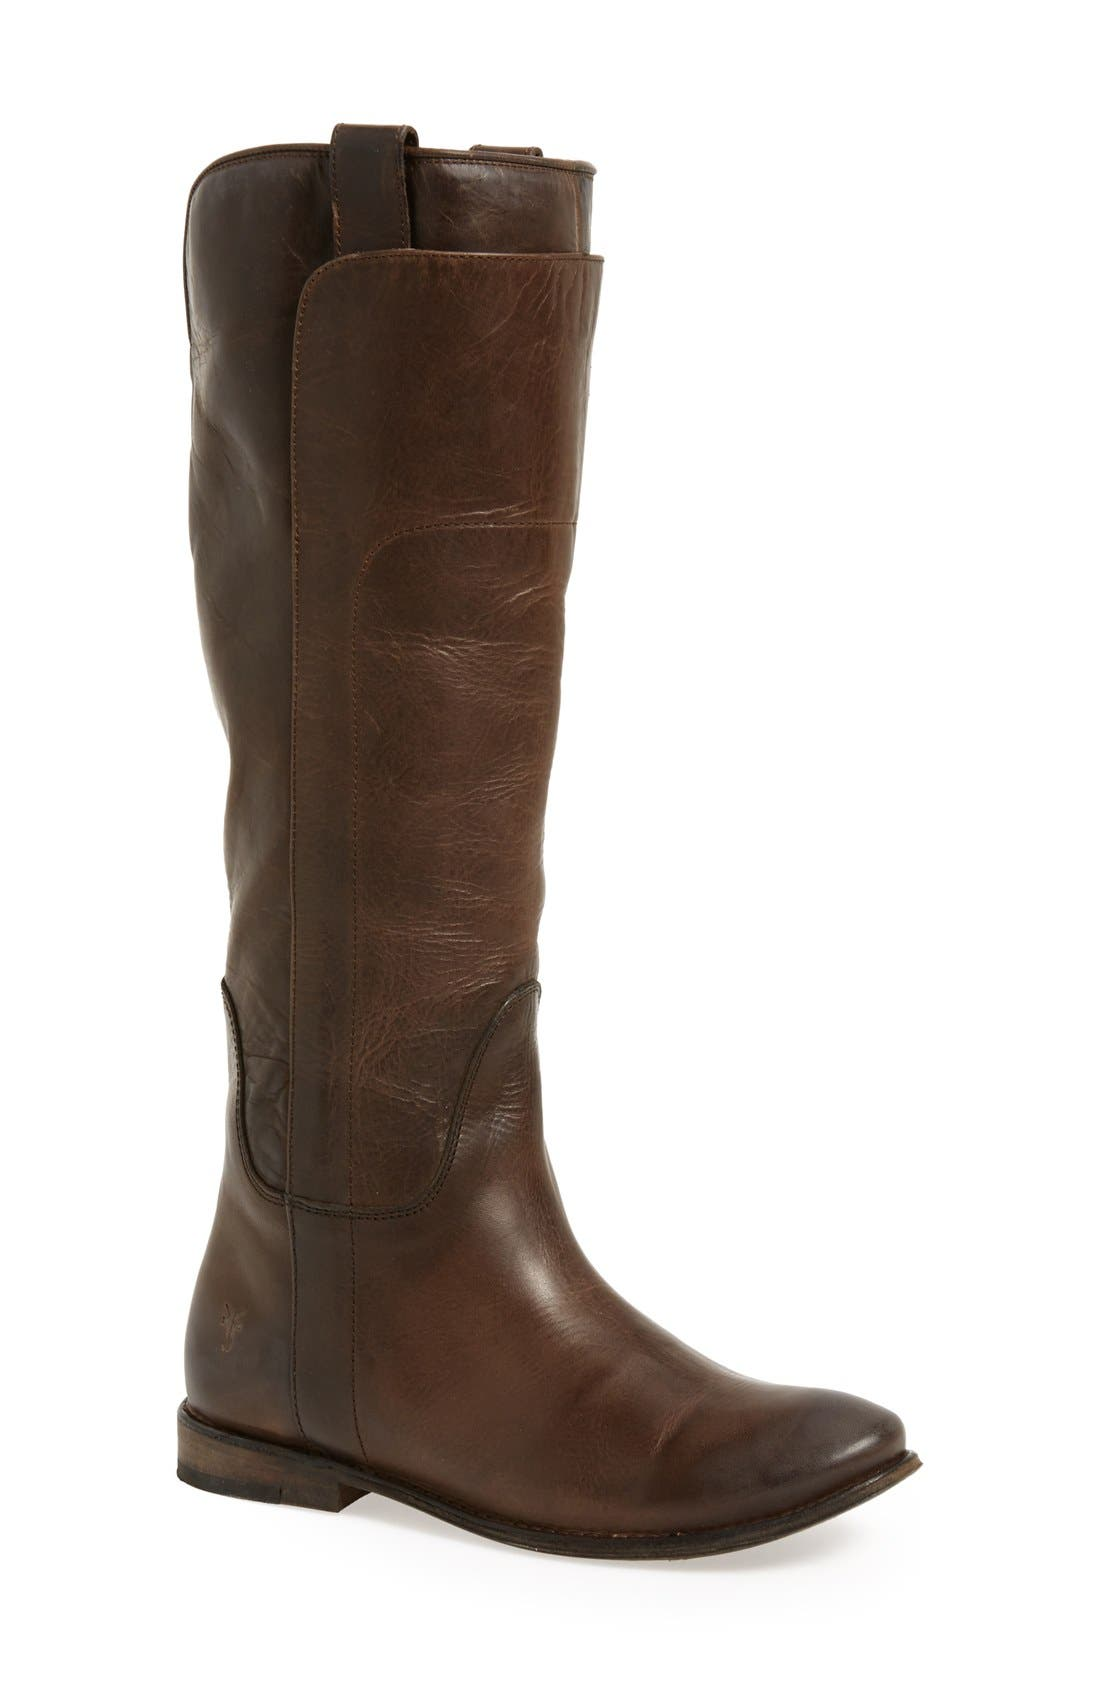 Alternate Image 1 Selected - Frye 'Paige' Tall Riding Boot (Women)